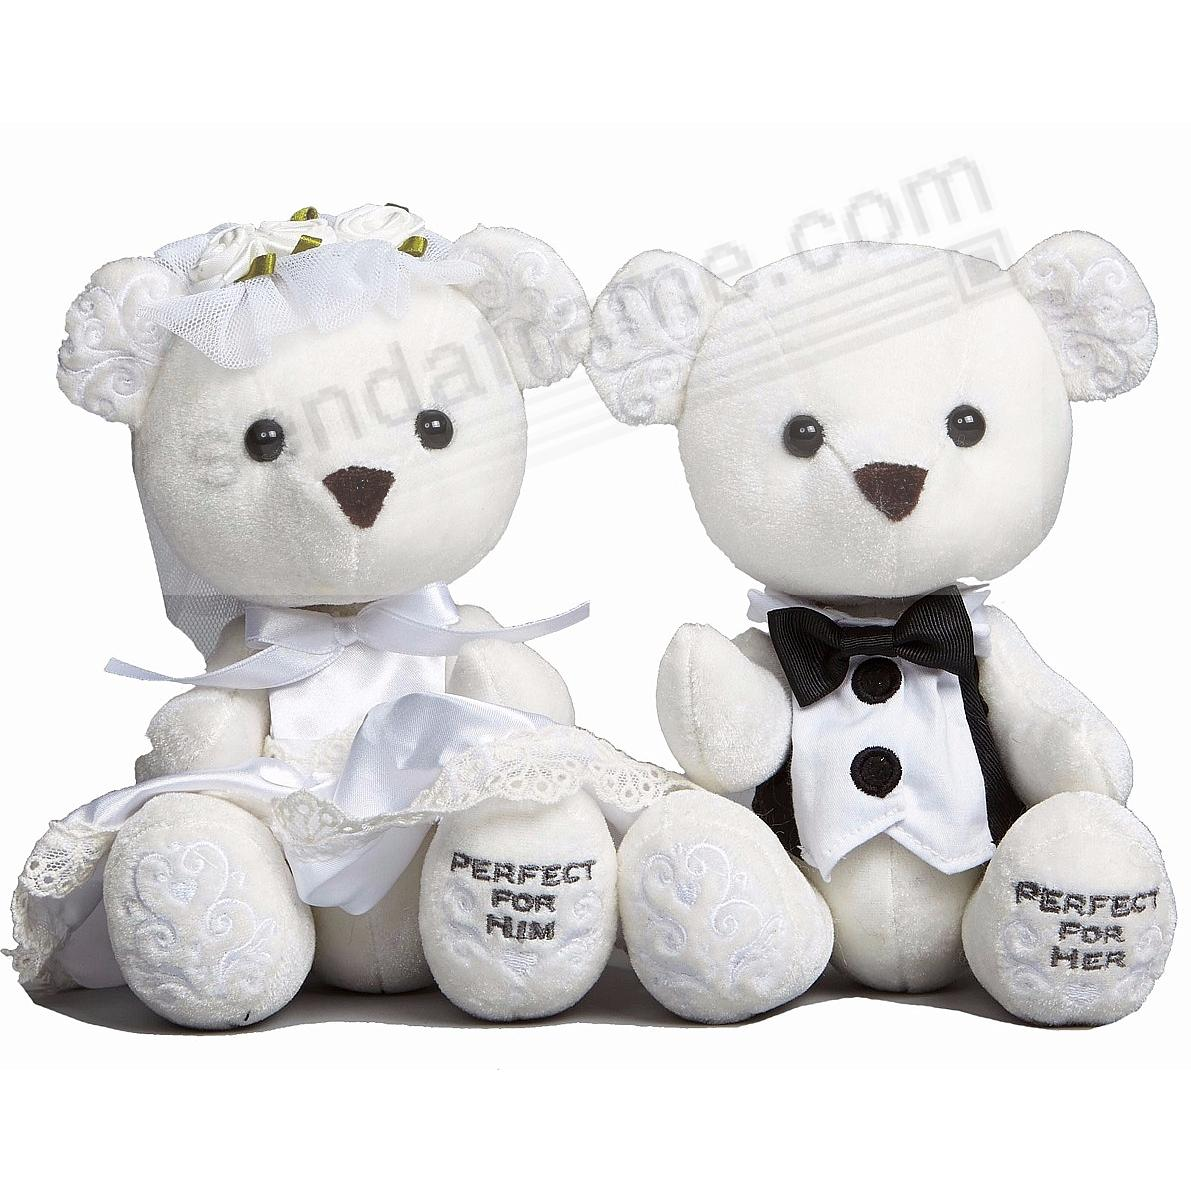 BRIDE & GROOM 9½-inch Plush Toy Bears by Enesco® (set of 2)